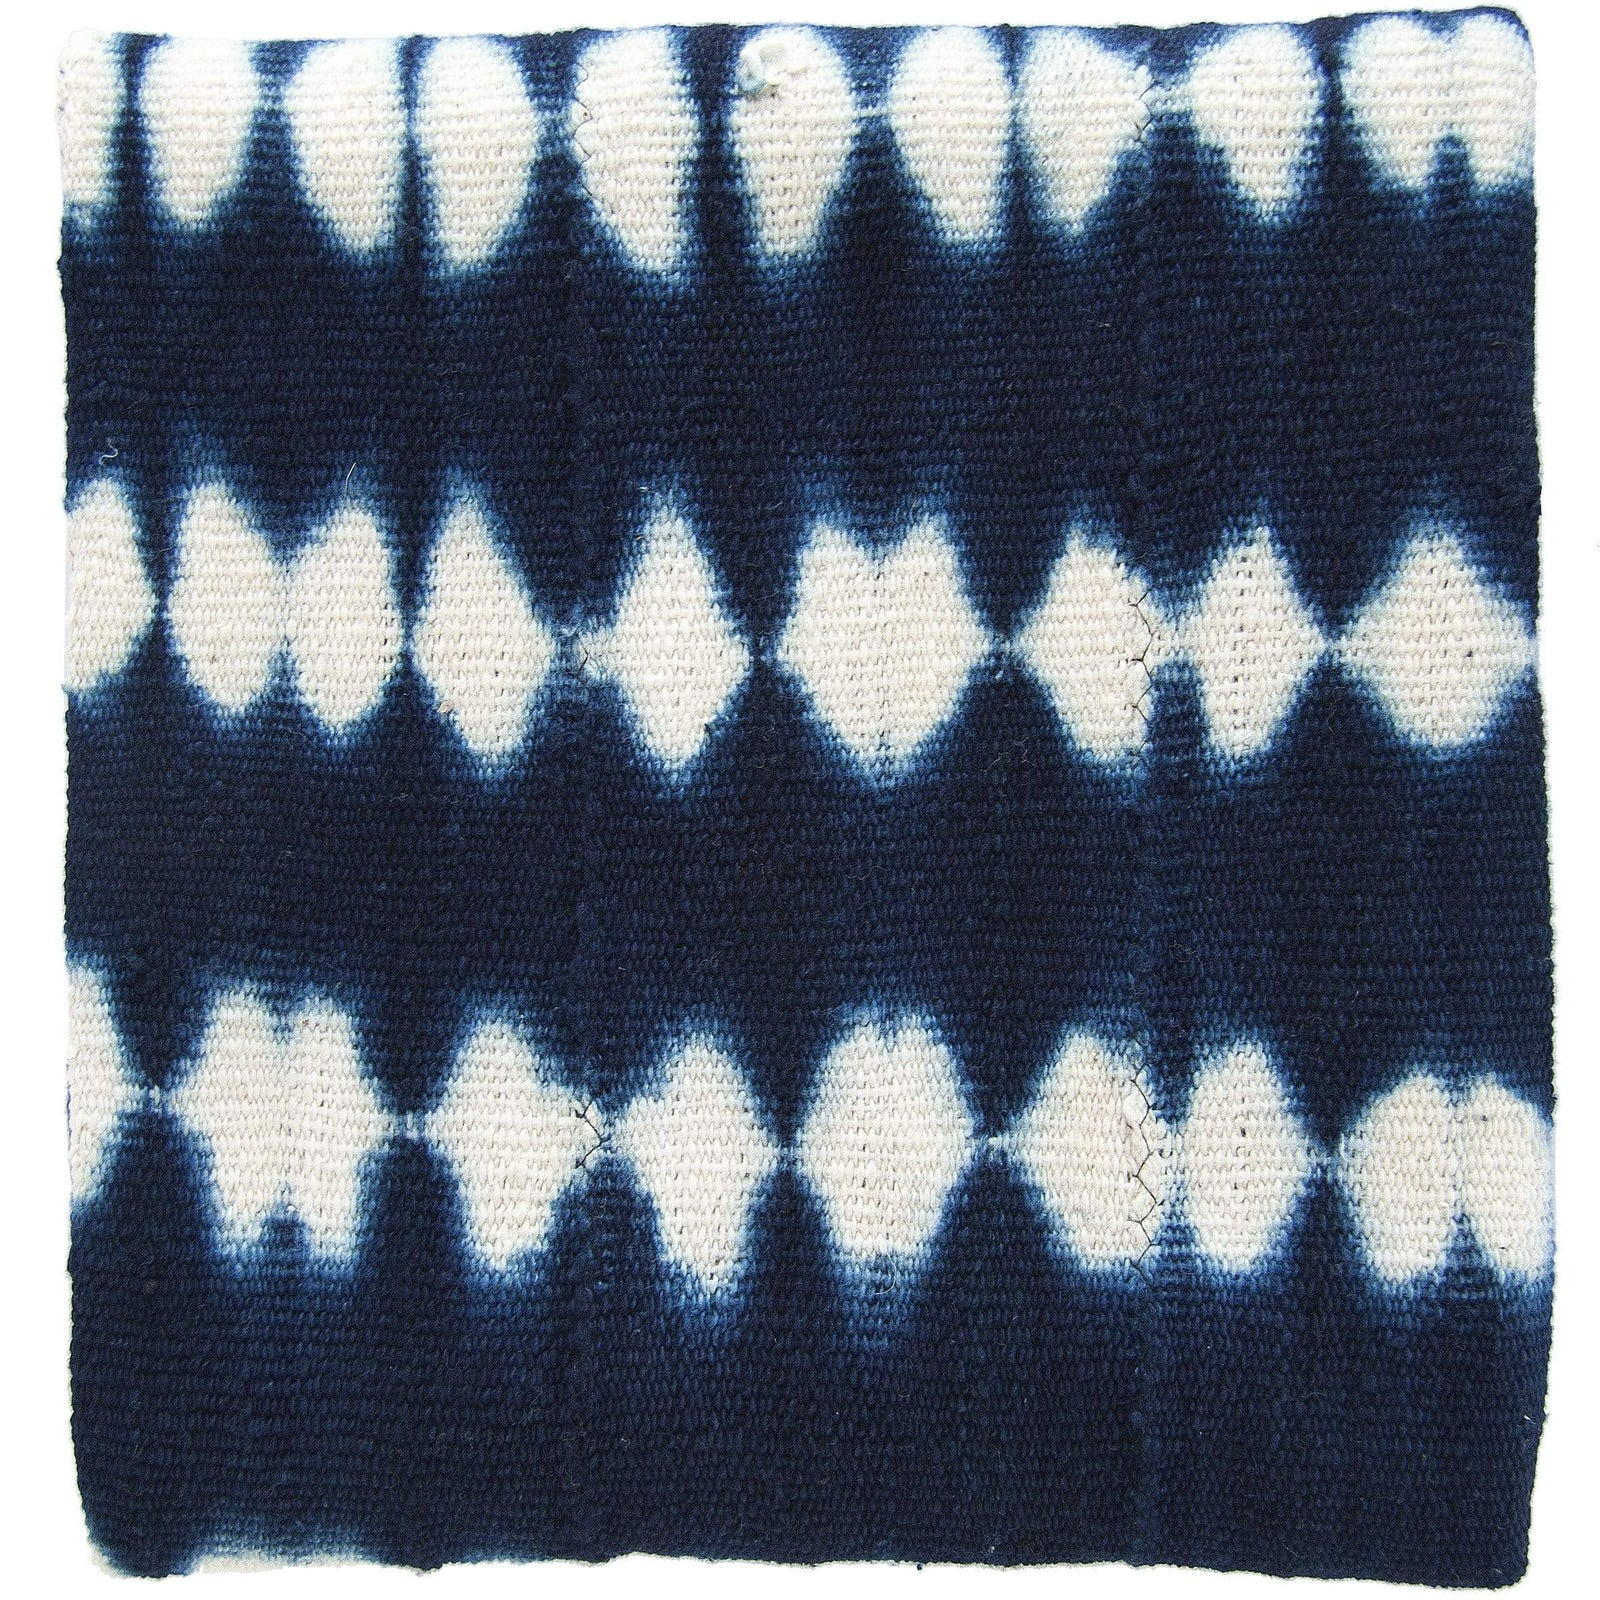 Africa Imports Textile Blue Mud Cloth